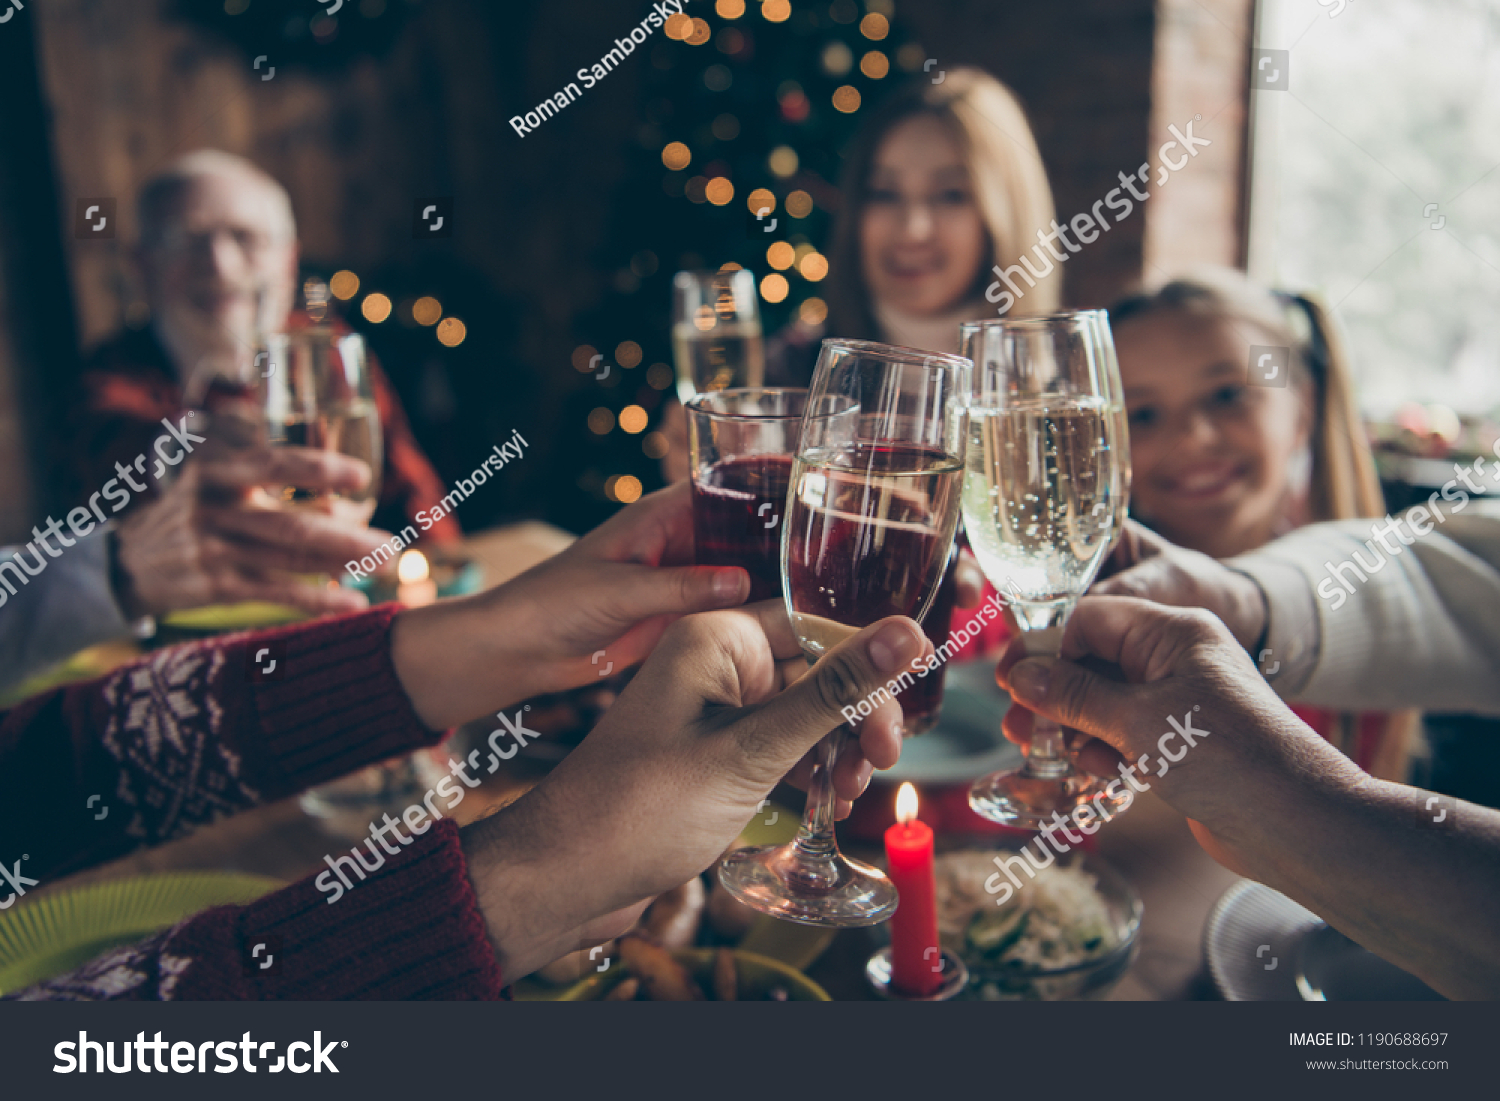 Eve family gathering meeting dream wish concept. Cropped wineglass, cheerful gray-haired grandparents, grandchildren, daughter sitting at table, house party, fun joy navidad hands hold glass #1190688697